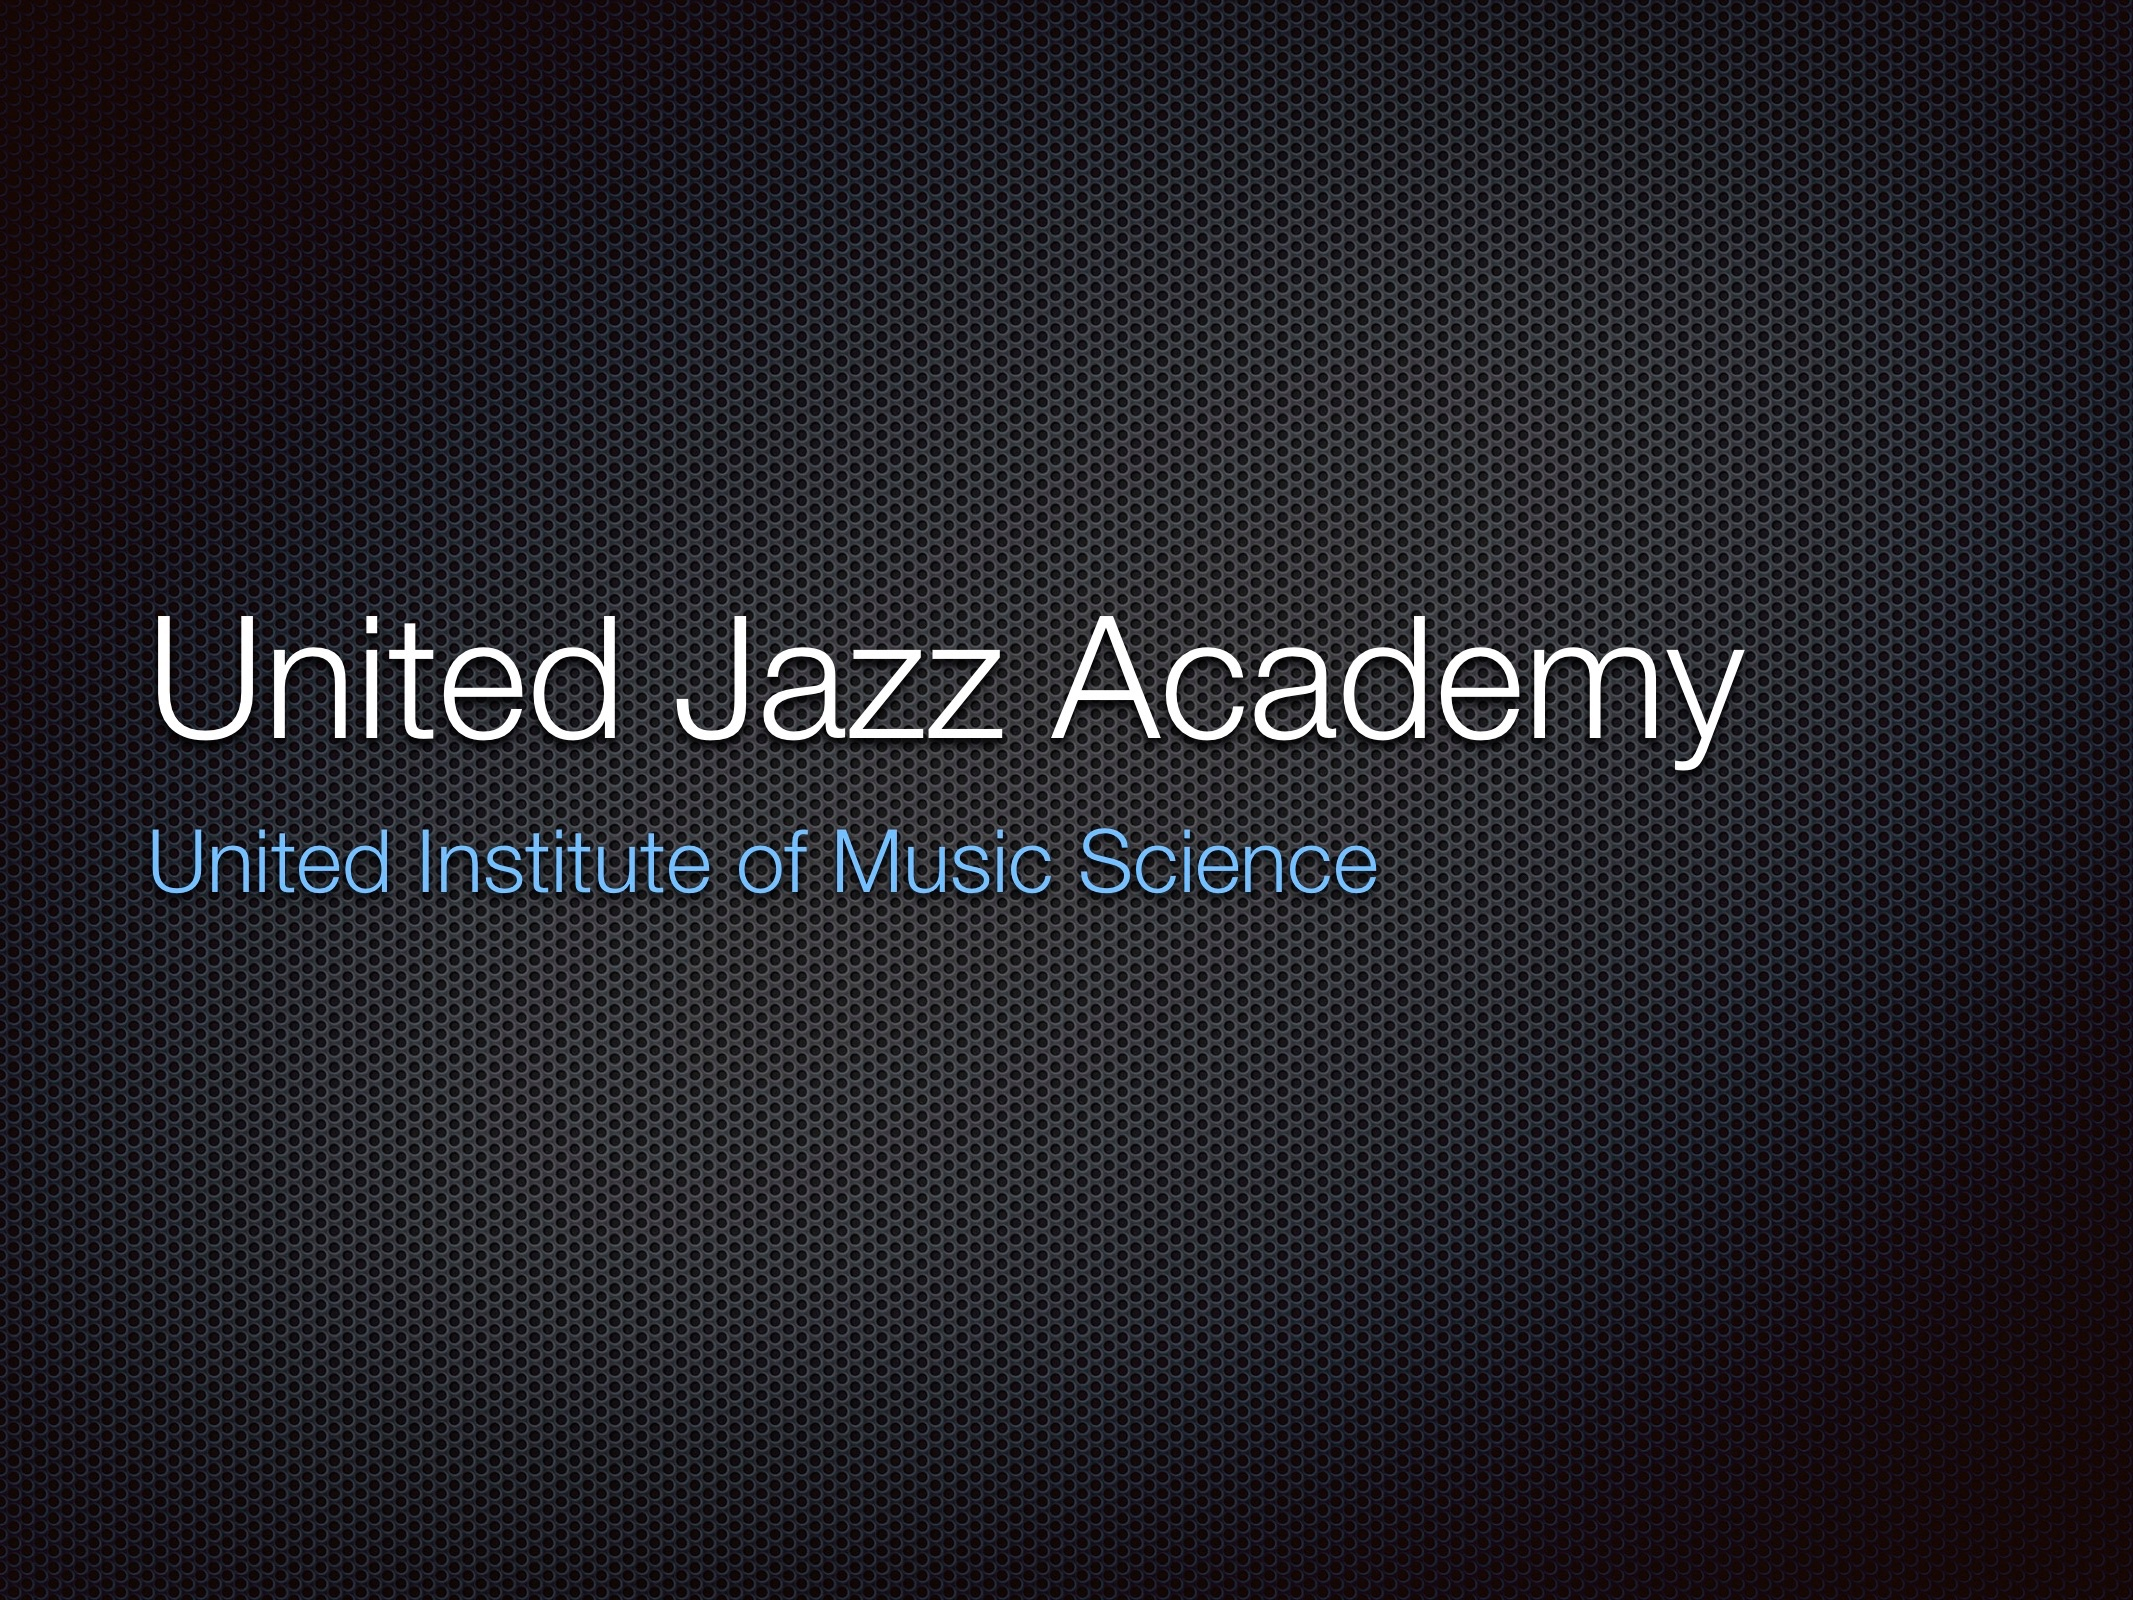 United Jazz Academy